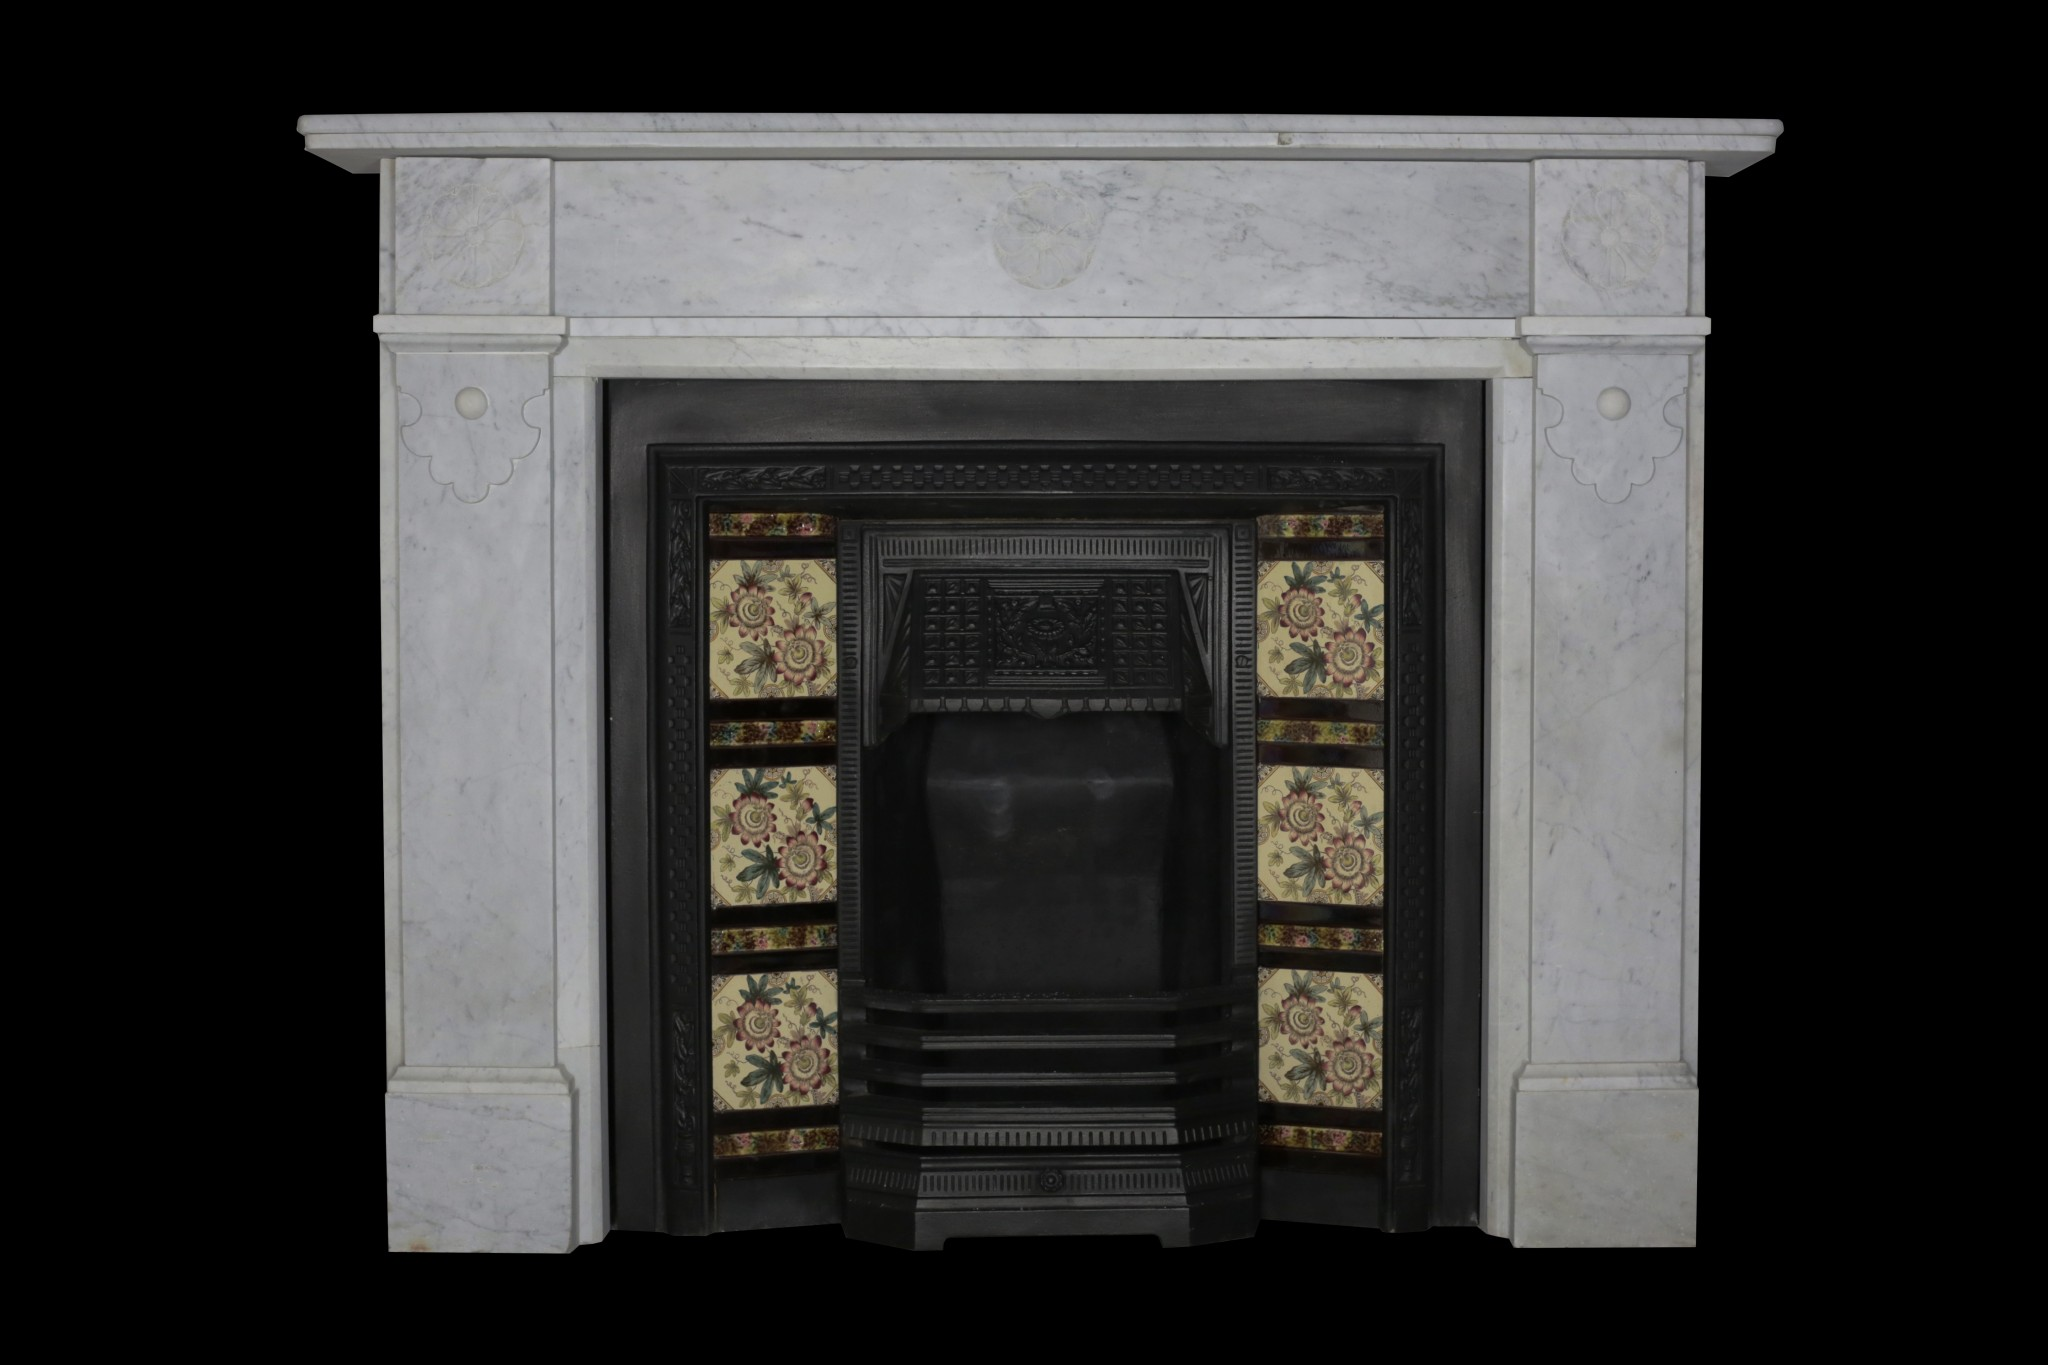 Carrara Marble Arts and Crafts style fireplace